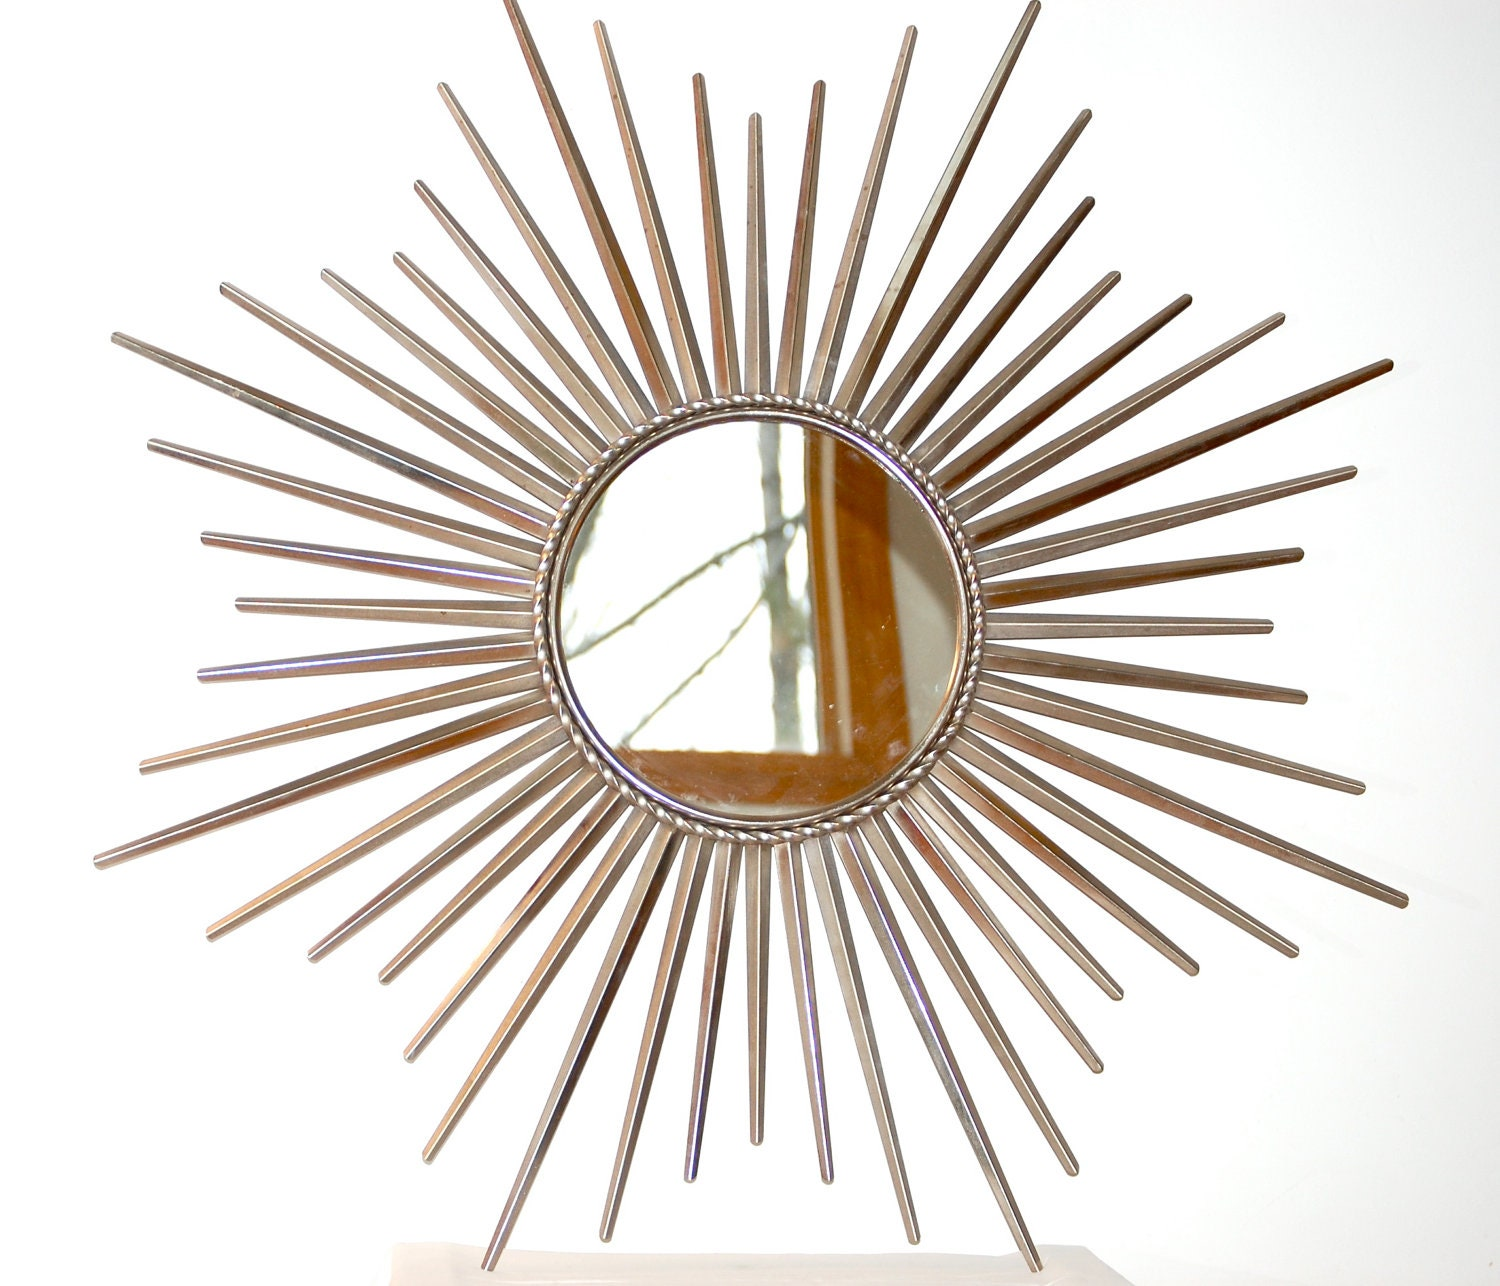 Starburst Wall Decor Mirror: Large Vintage Starburst Mirror Wall Hanging Silver Metal